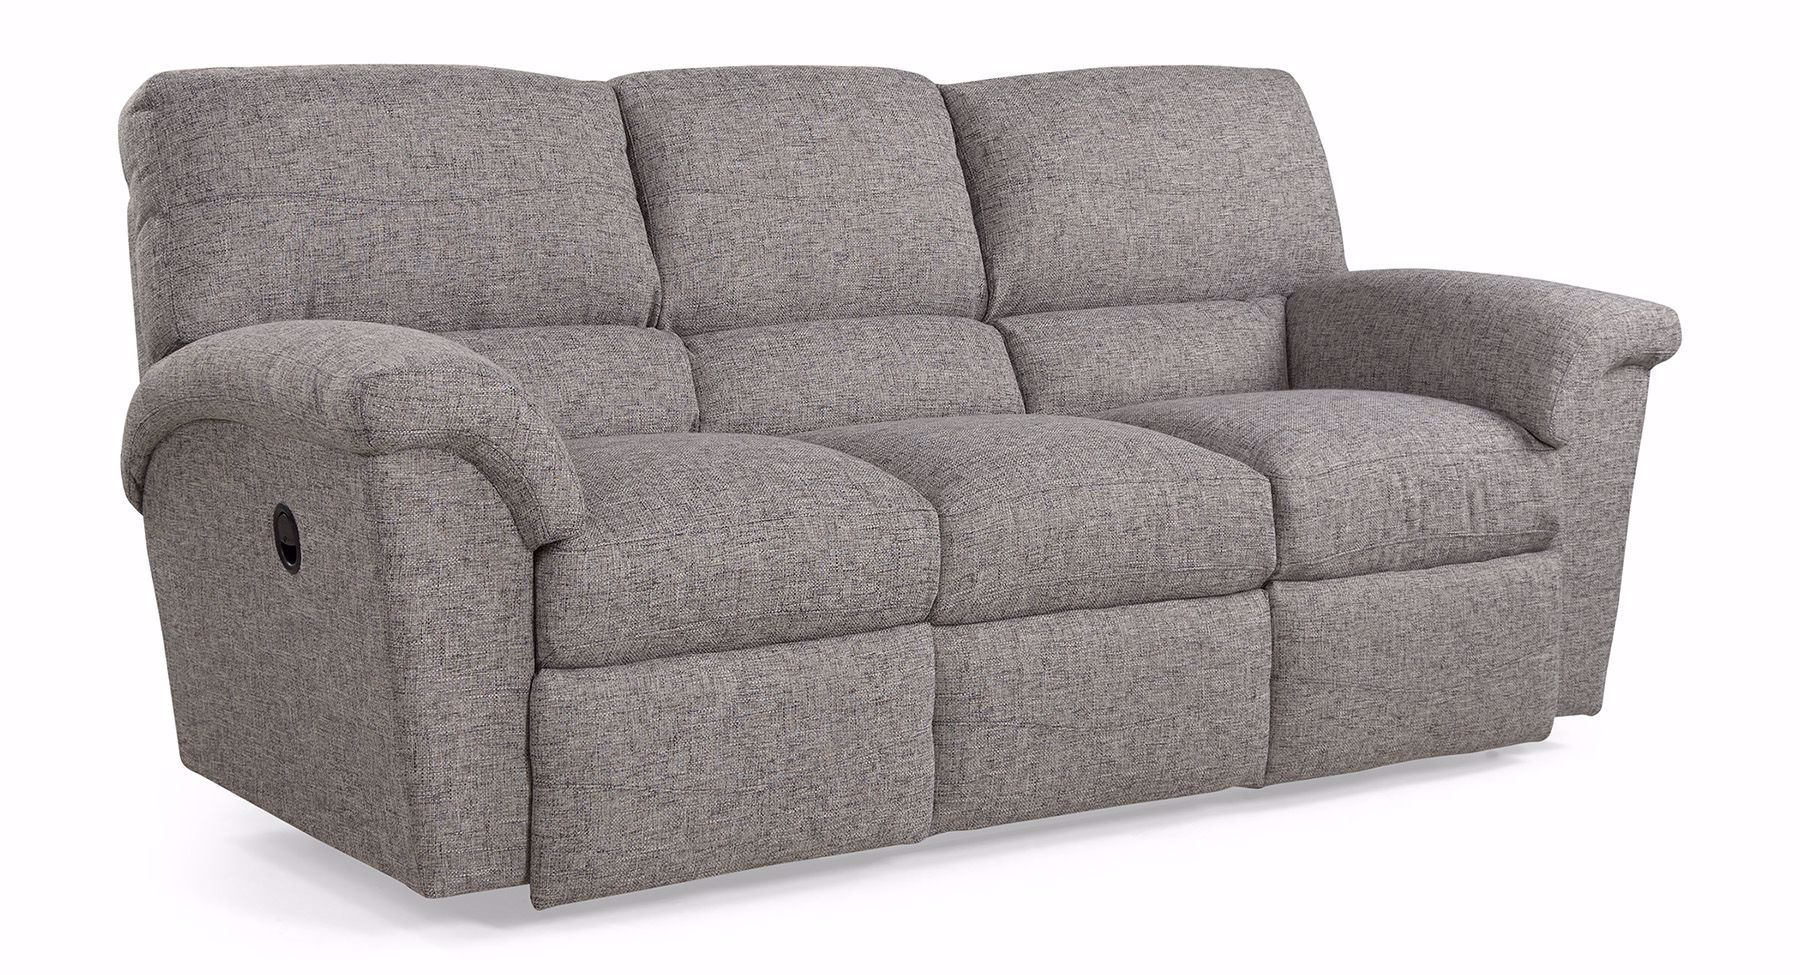 Picture of Reese Salt and Pepper Reclining Sofa